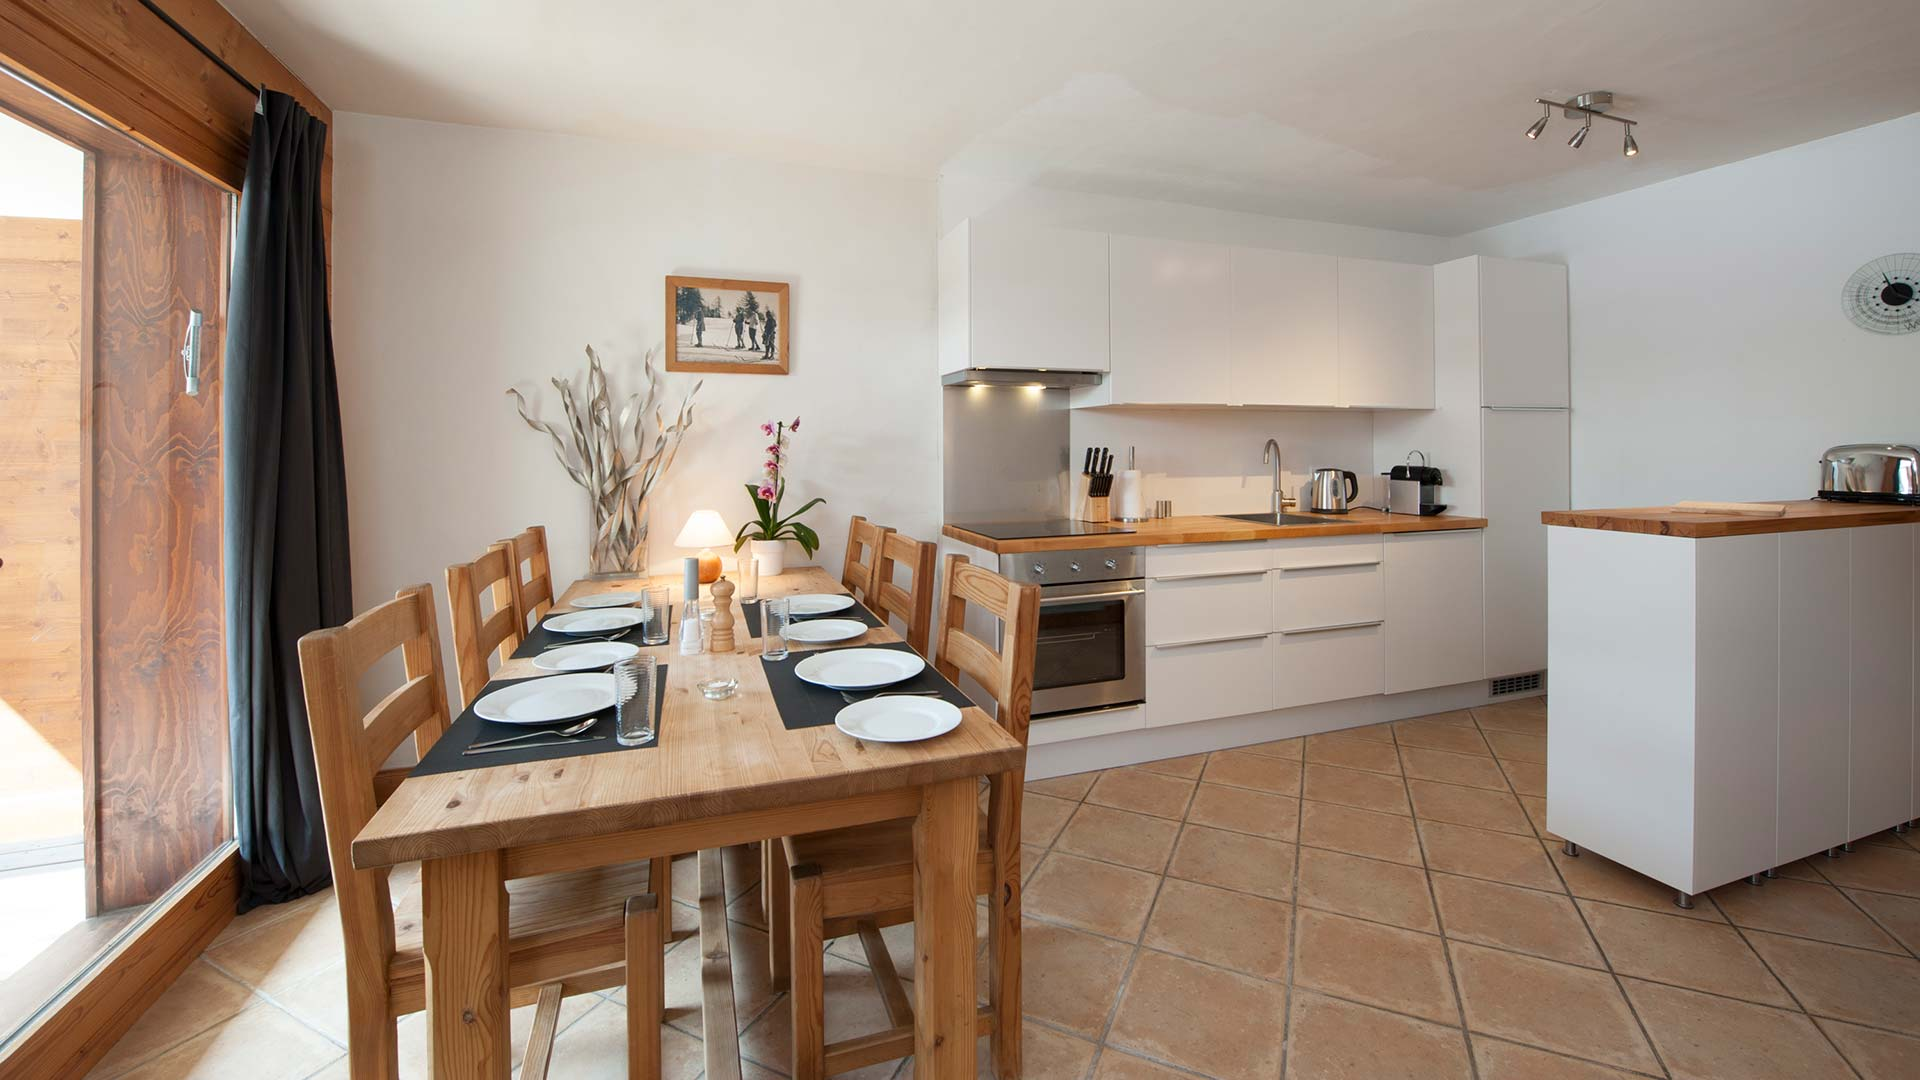 Apartment Agneau dining room & kitchen, sleeps 4, self catering.